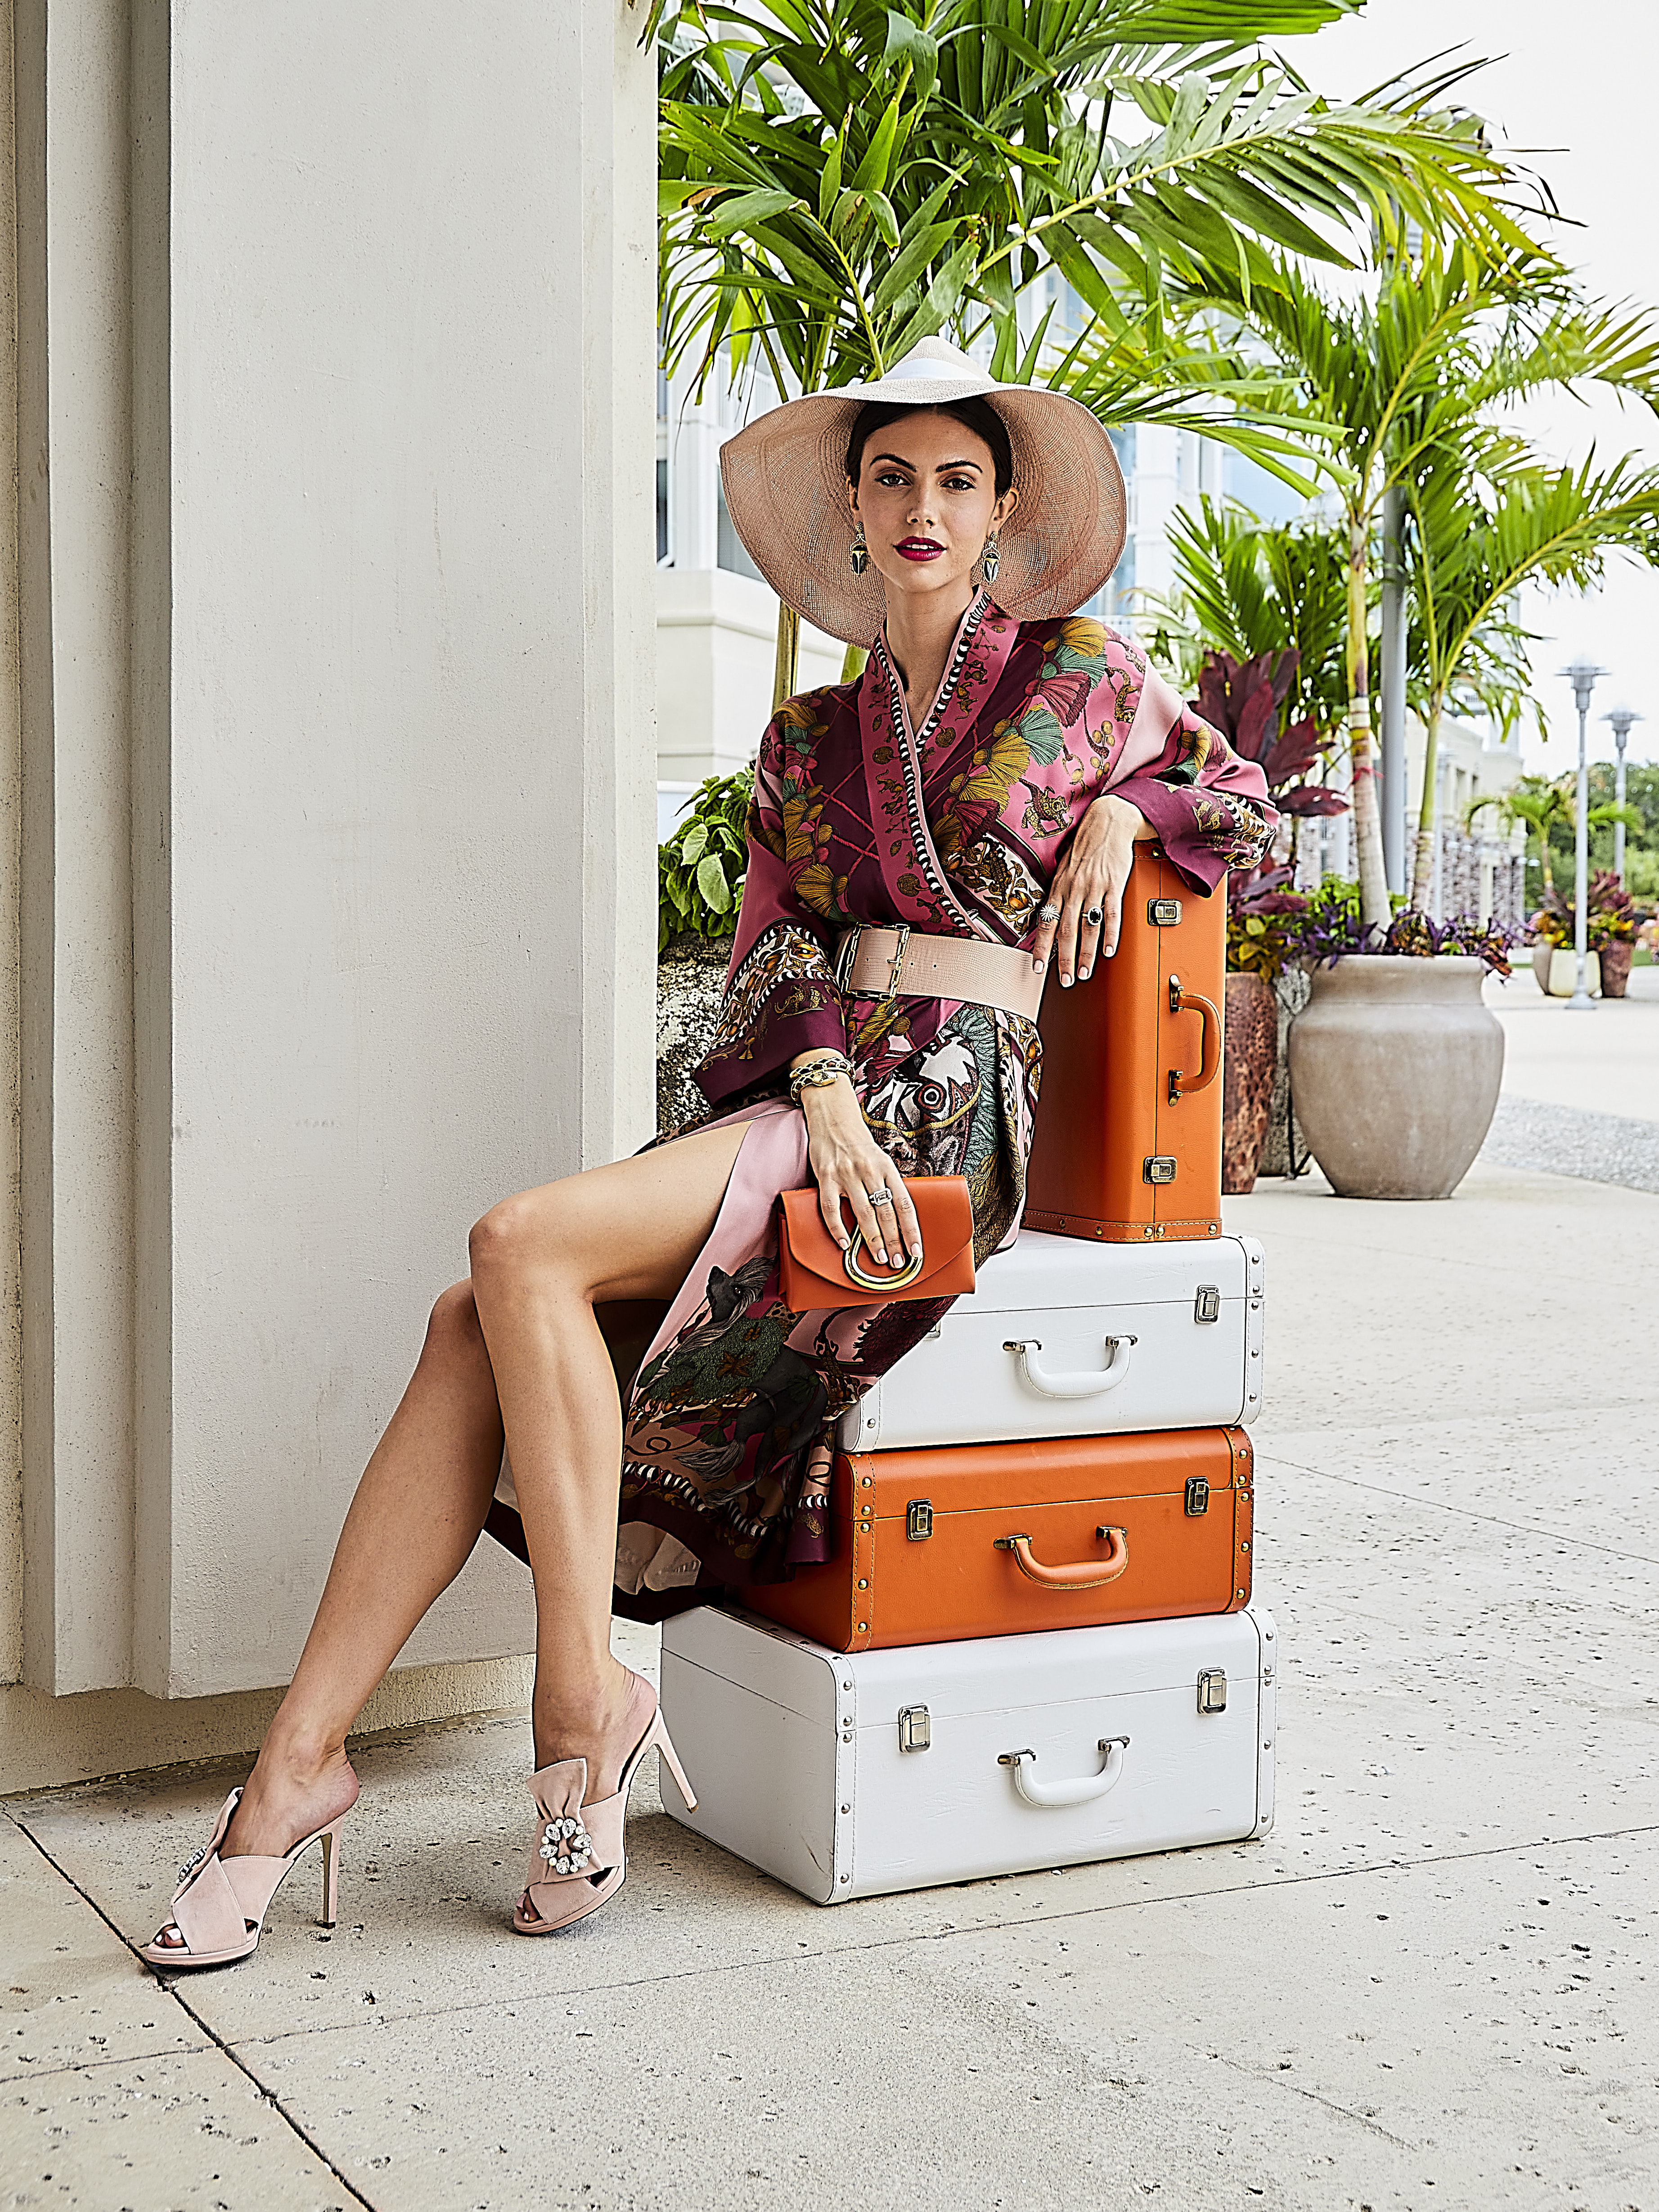 """Jet Set Chic: Sabina Savage kimono-style robe, $1,545 at RTW; Lafayette 148 NY """"Icon"""" hat, $398, Capucine de Wulf """"Scarab Night Berry"""" earrings, $225, and """"Serpentina"""" hinged bangle, $335, all at Gwynn's of Mount Pleasant; Lizzie Fortunato vintage belt, $150 at Harper and Hartford; David Yurman """"Starburst"""" ring, $4,800, and """"Novella"""" statement ring with morganite, $2,900, both at REEDS Jewelers; one-of-a-kind alexandrite ring, $25,000 at Diamonds Direct; St. John mini loop leather clutch, $1,095 at St. John Boutique; """"Kaia"""" blade vamp, $314 at Tara Grinna; luggage courtesy of Harper  and Hartford"""